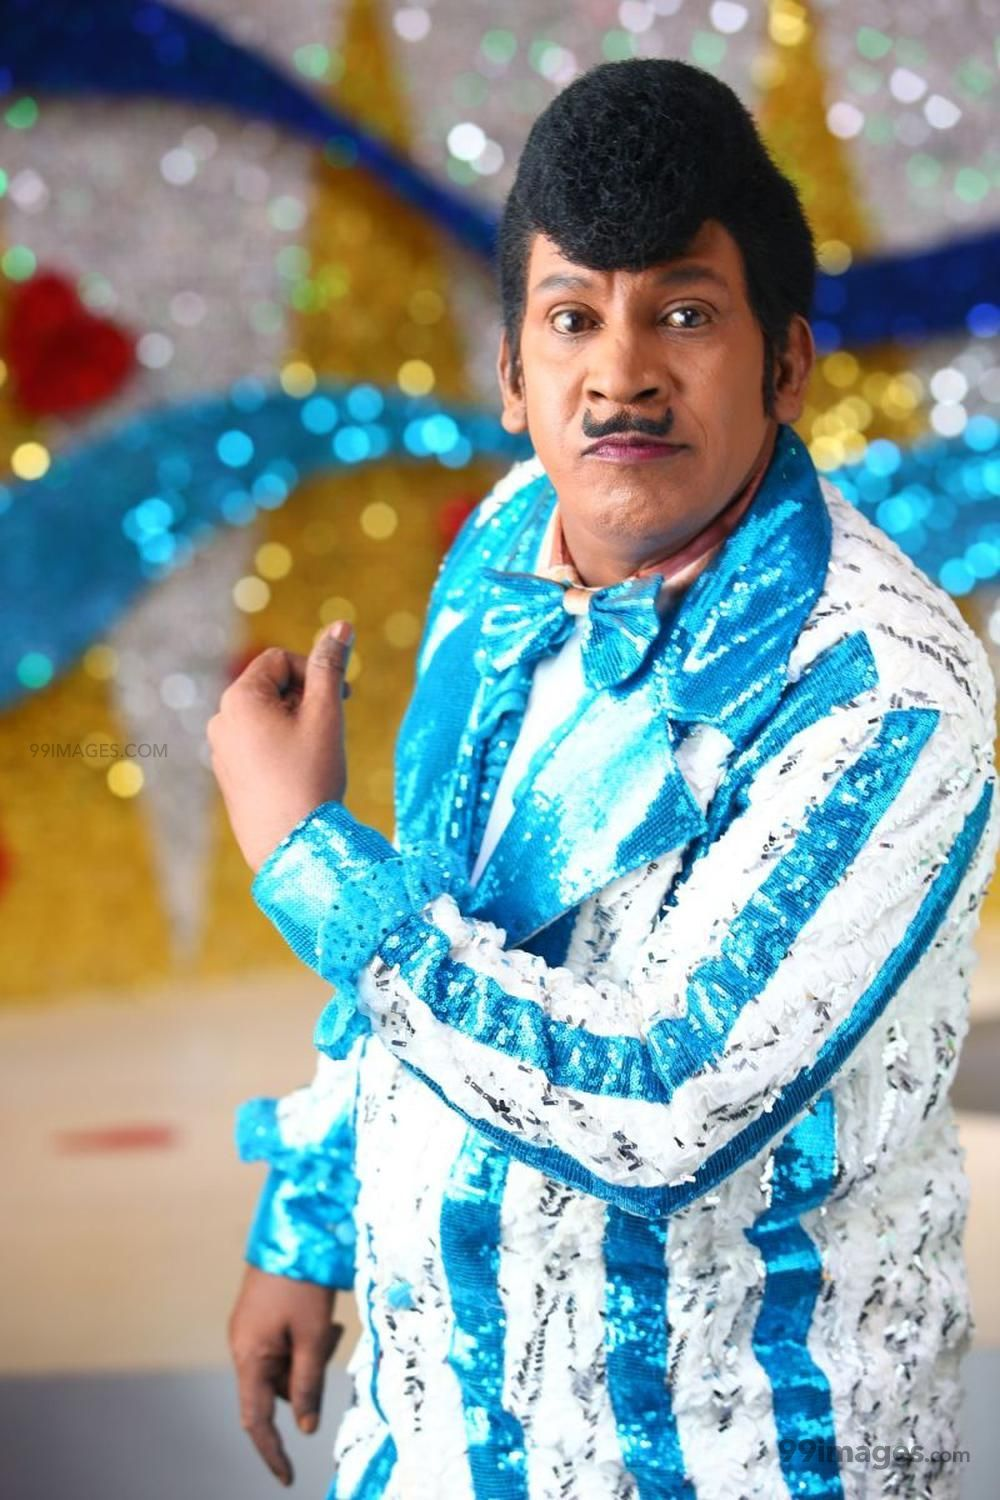 Vadivelu HD Wallpapers (Desktop Background / Android / iPhone) (1080p, 4k) (184193) - Vadivelu